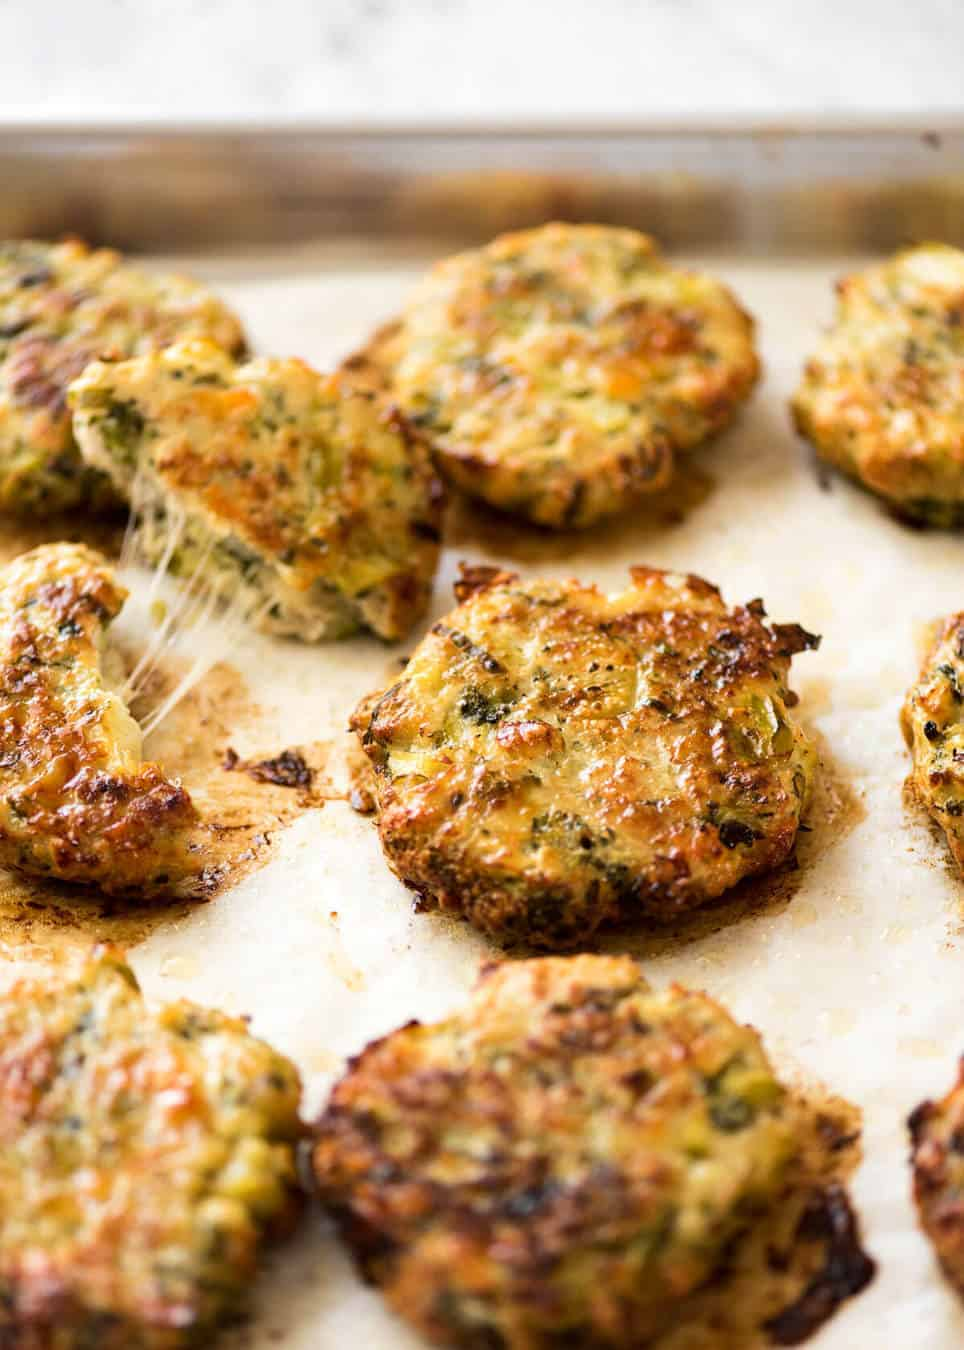 Golden and crispy on the outside, juicy and cheesy on the inside - BAKED Cheesy Broccoli Chicken Patties. www.recipetineats.com